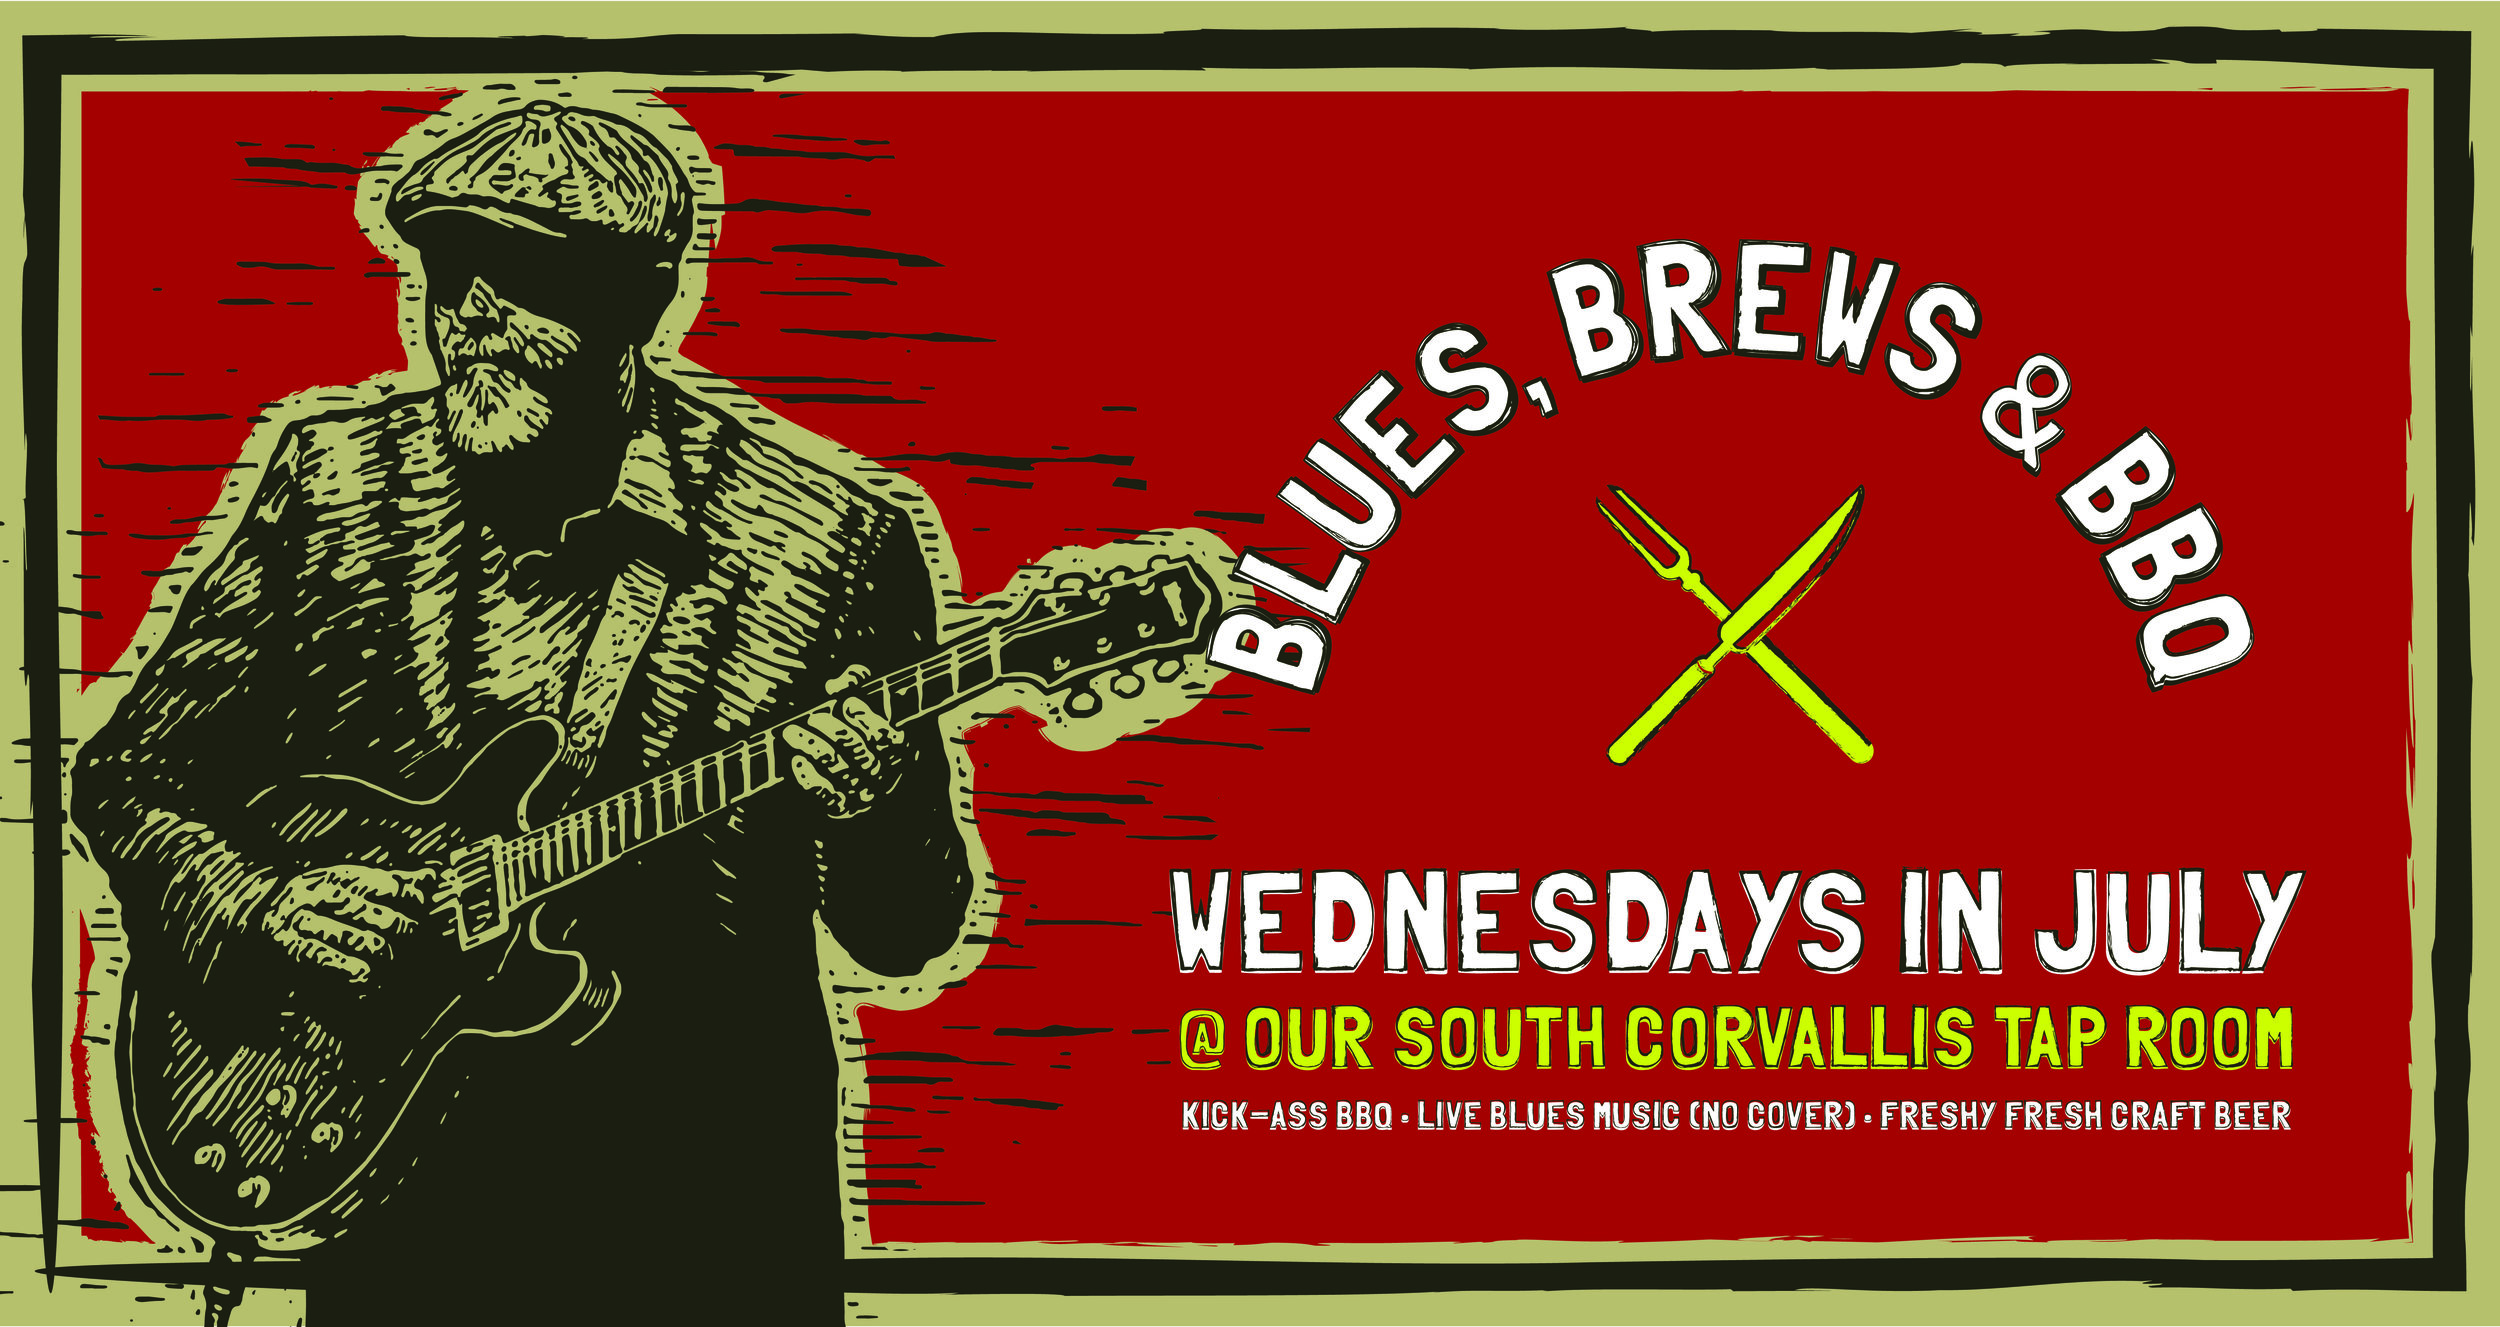 "Join us Wednesdays in July for ""Blues, Brews & BBQ"" at our Tap Room! Enjoy cover-free blues from local musicians, kick-ass BBQ specials, and freshy fresh beer brewed feet from your seat. This Wednesday we welcome Adam Scramstad and feature a special menu of Blueberry Smoked Pork Shoulder and Bourbon Pickles with a side of BBQ Beans, Street Corn and Texas Toast."